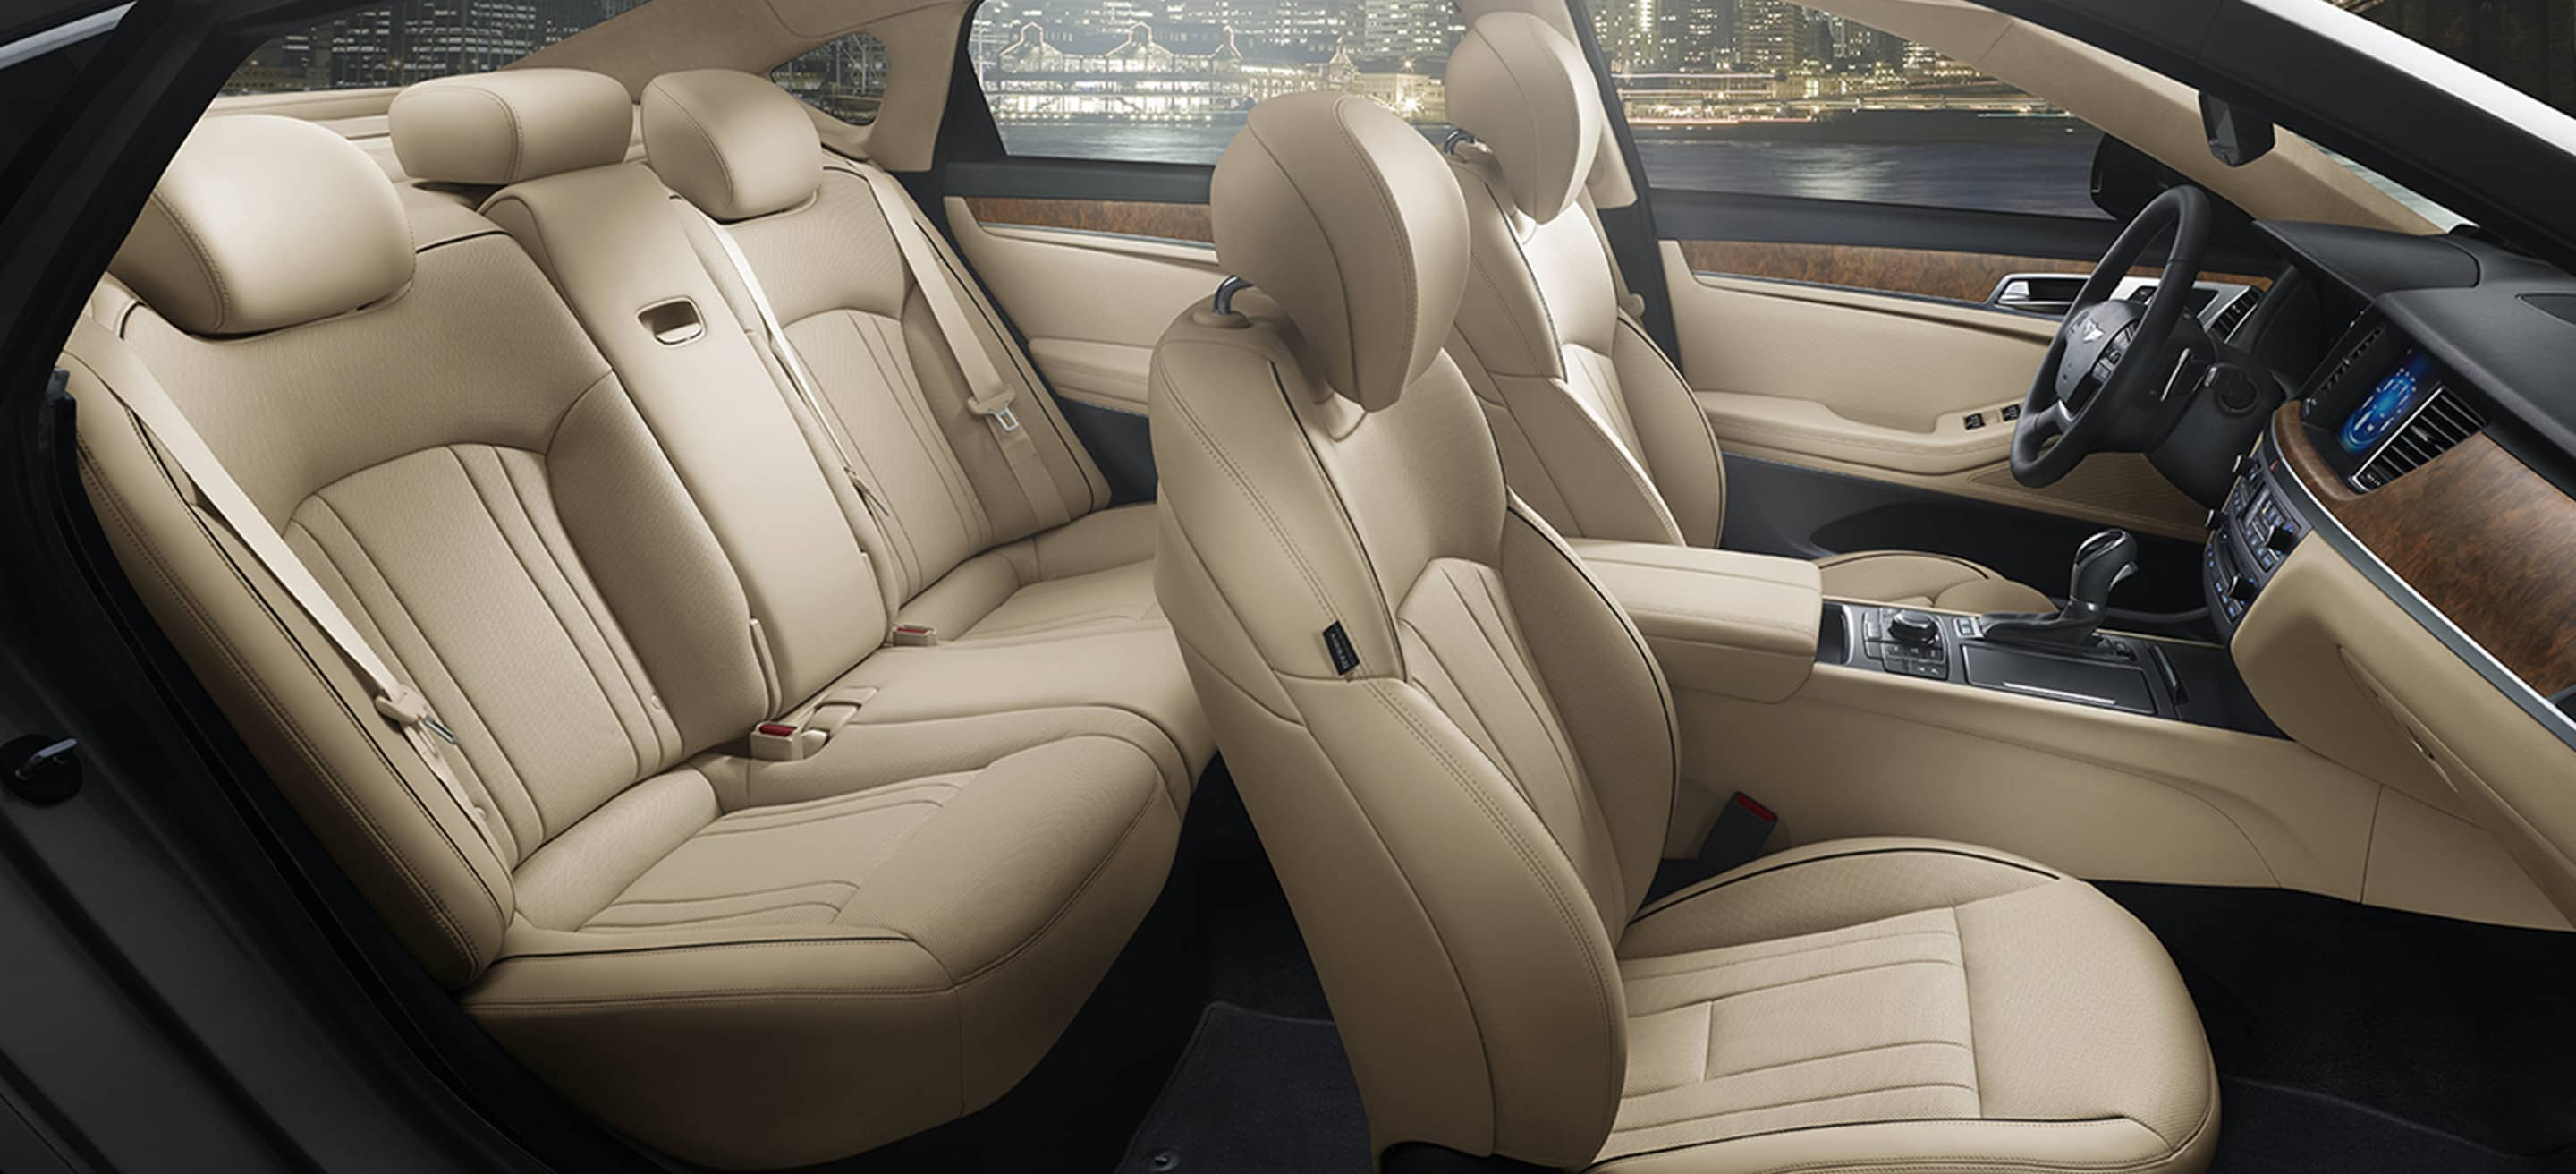 Genesis G80 Leather Seats